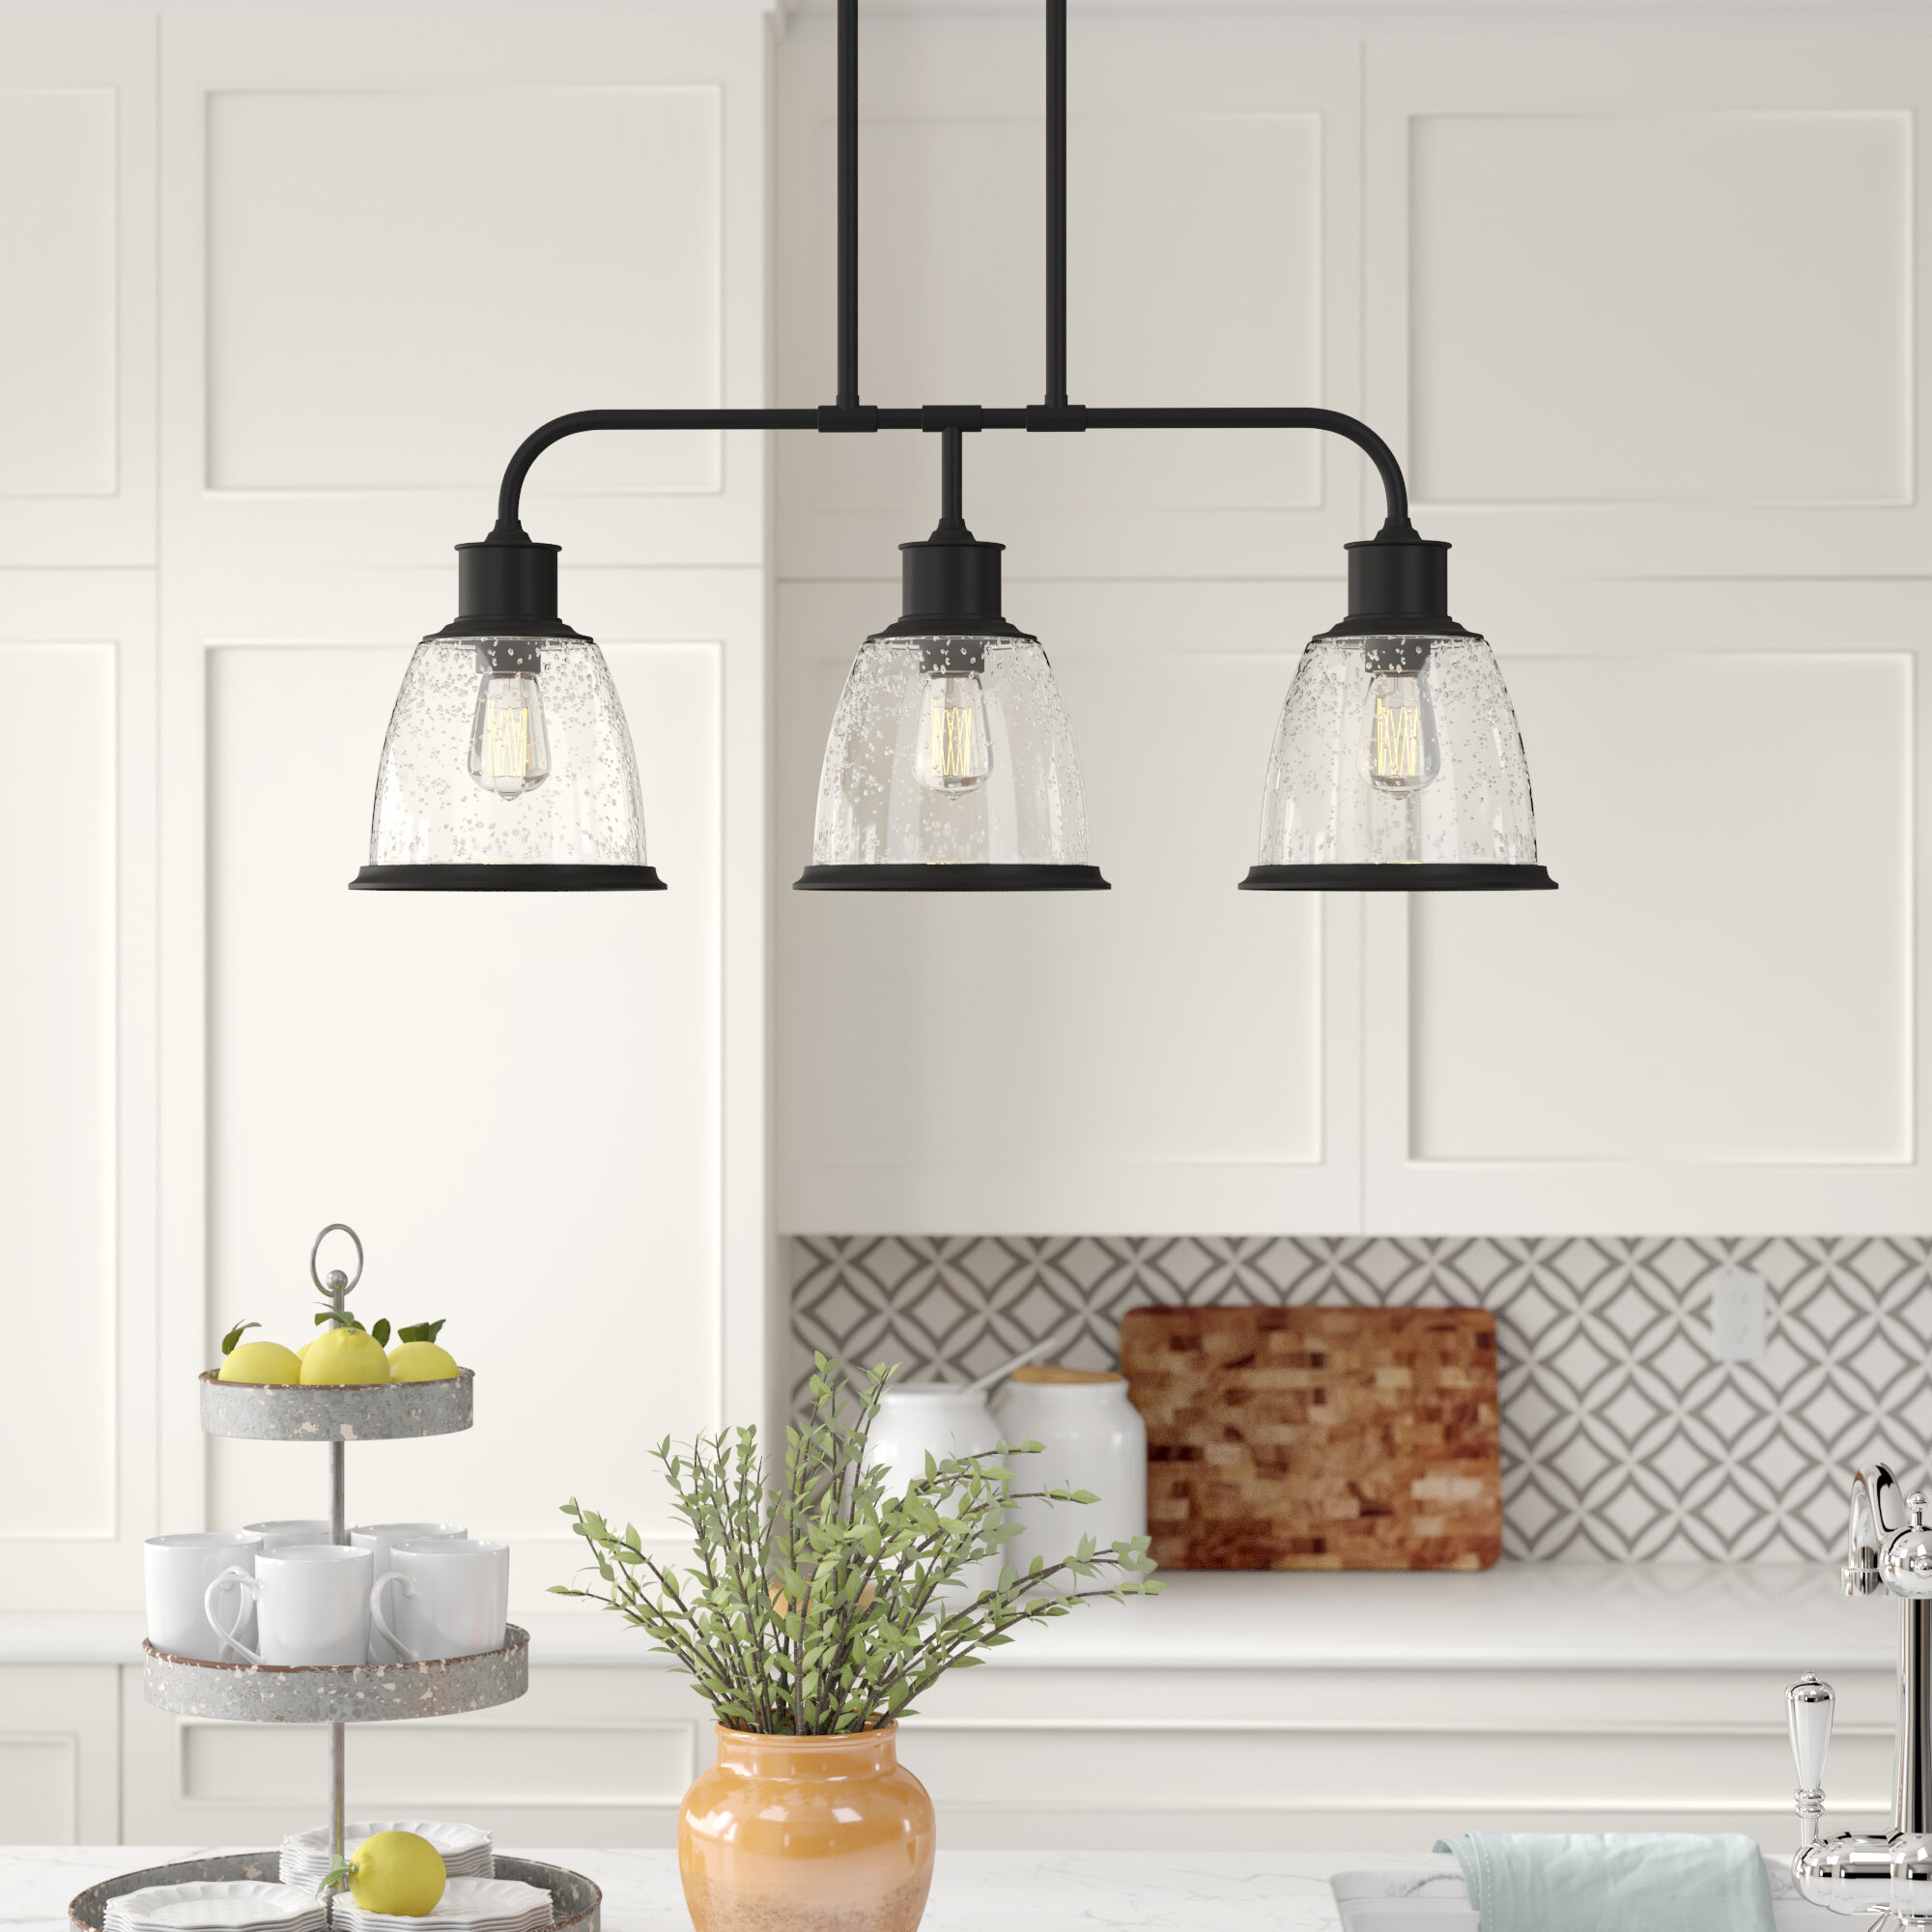 Ambler 3-Light Kitchen Island Bell Pendant with Cinchring 4-Light Kitchen Island Linear Pendants (Image 3 of 30)